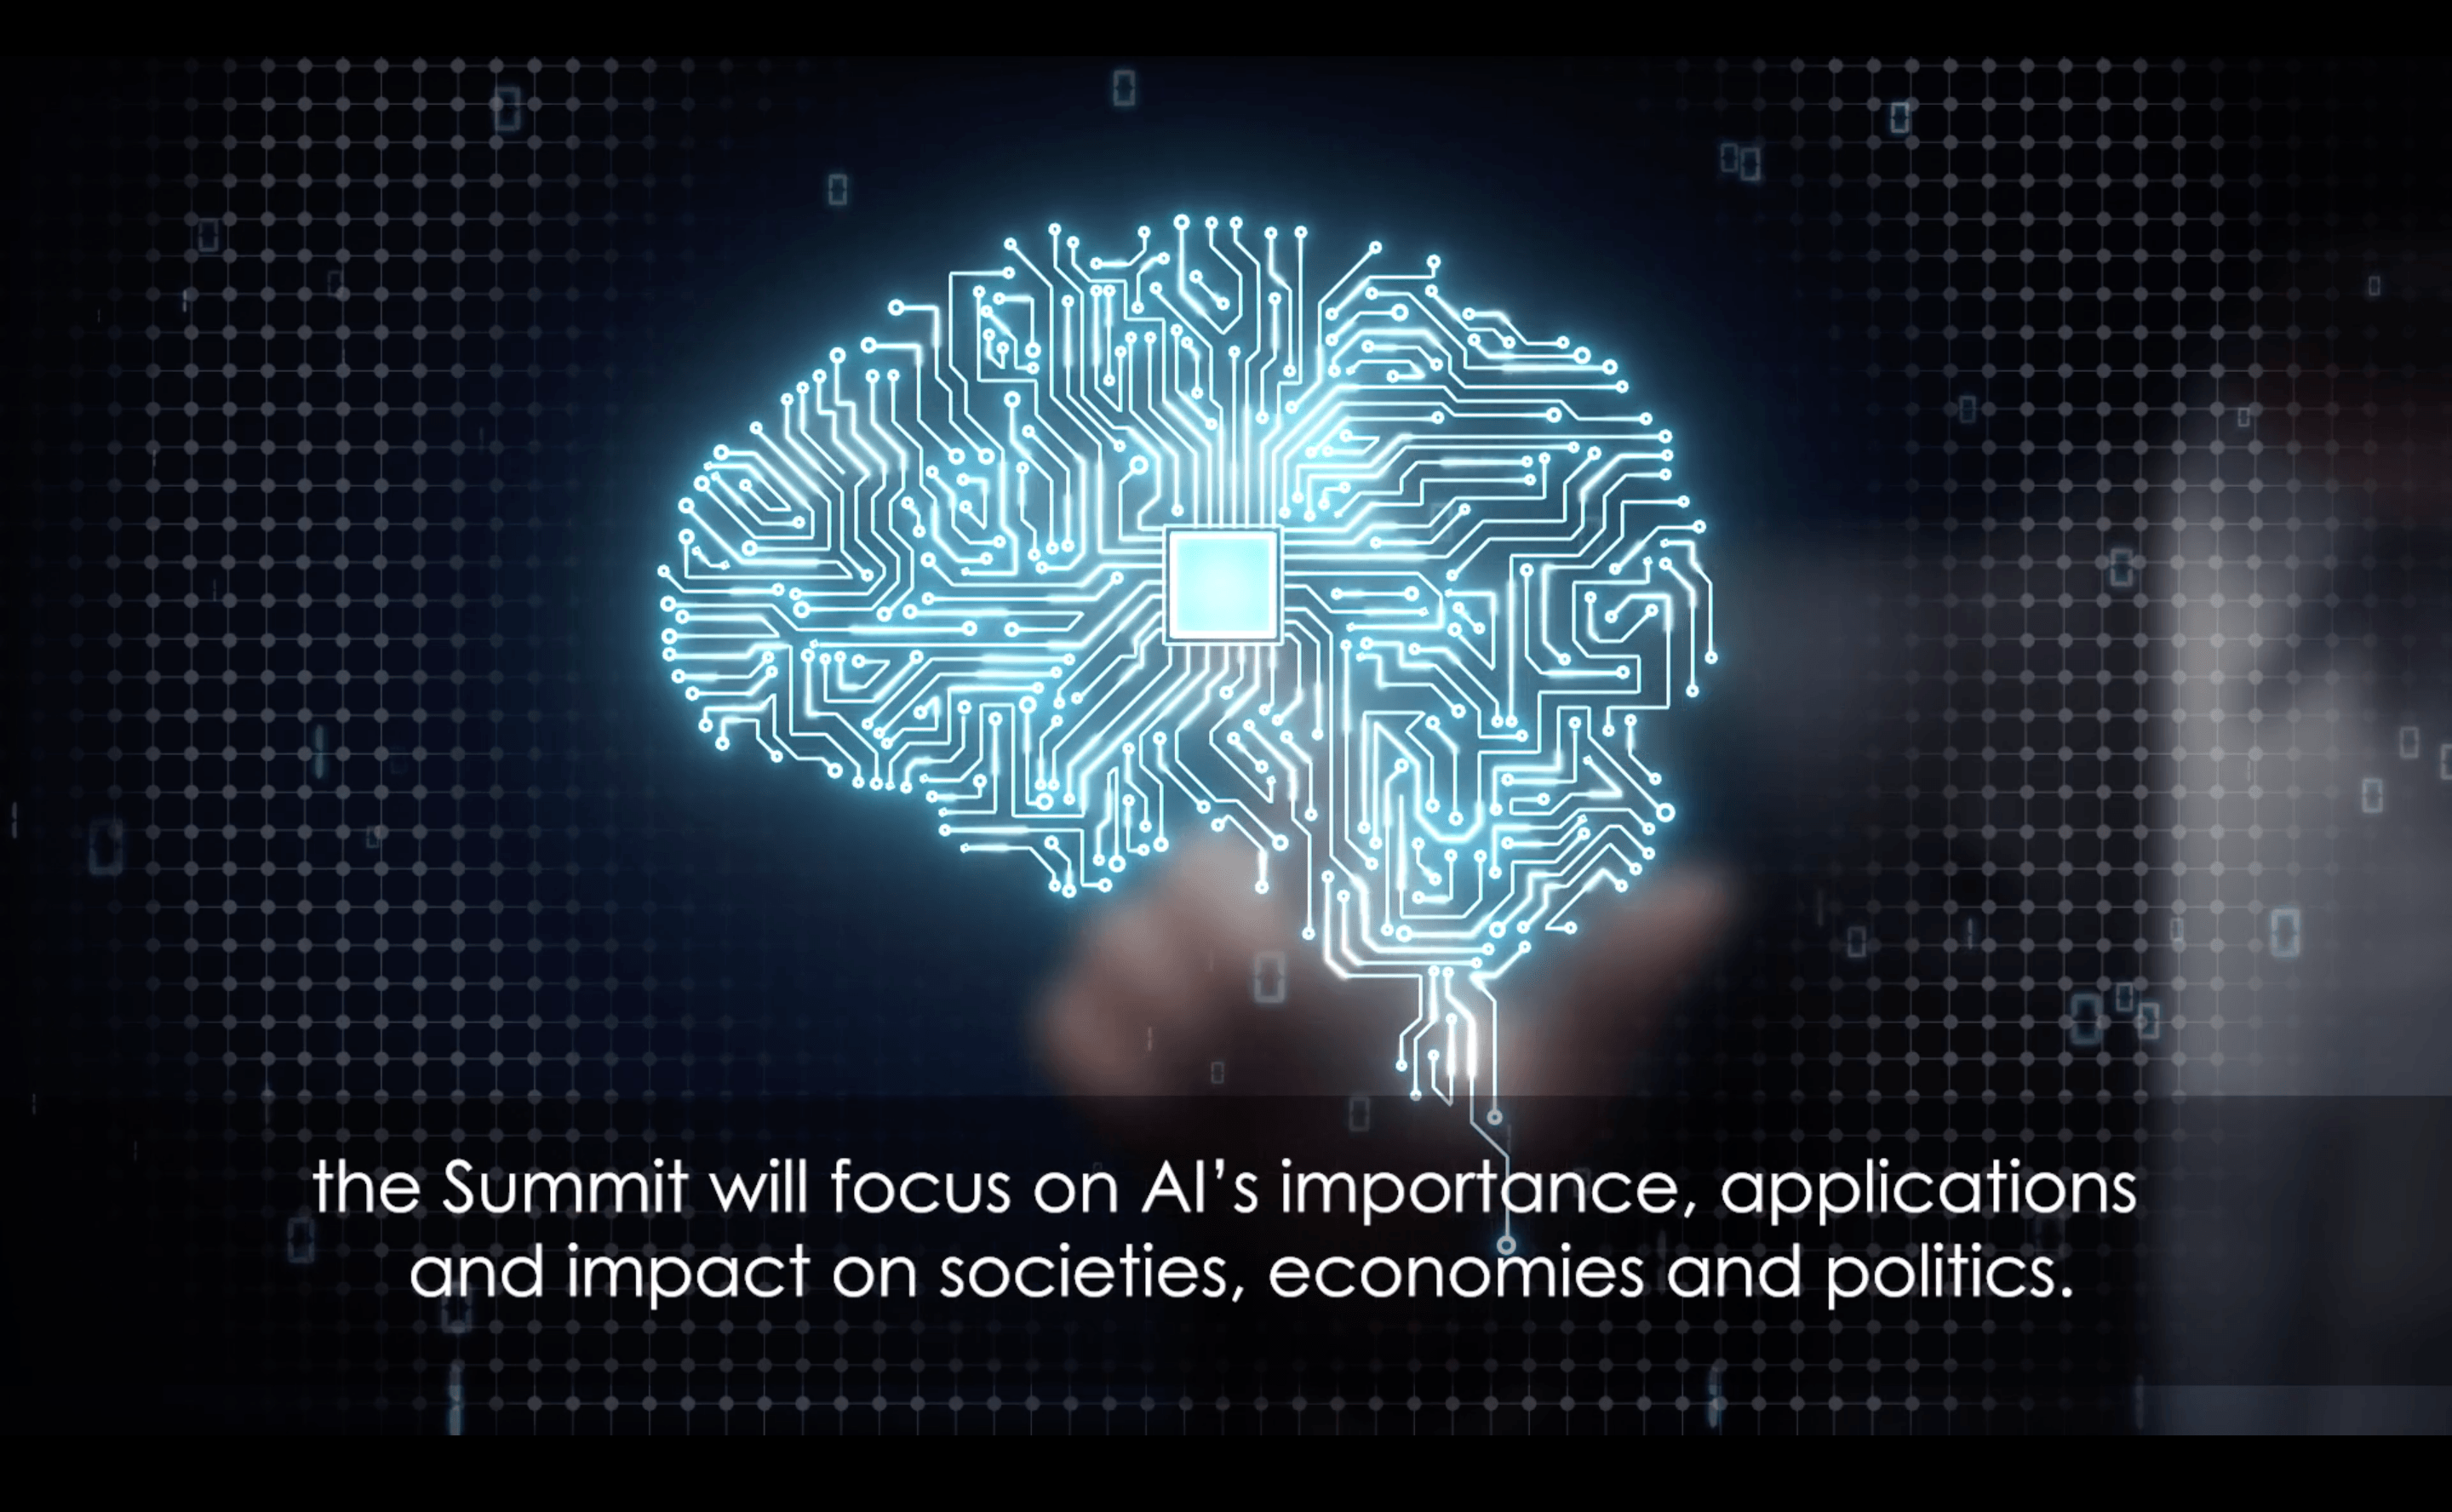 saudi-arabia-to-host-first-ever-global-ai-summit-in-2020